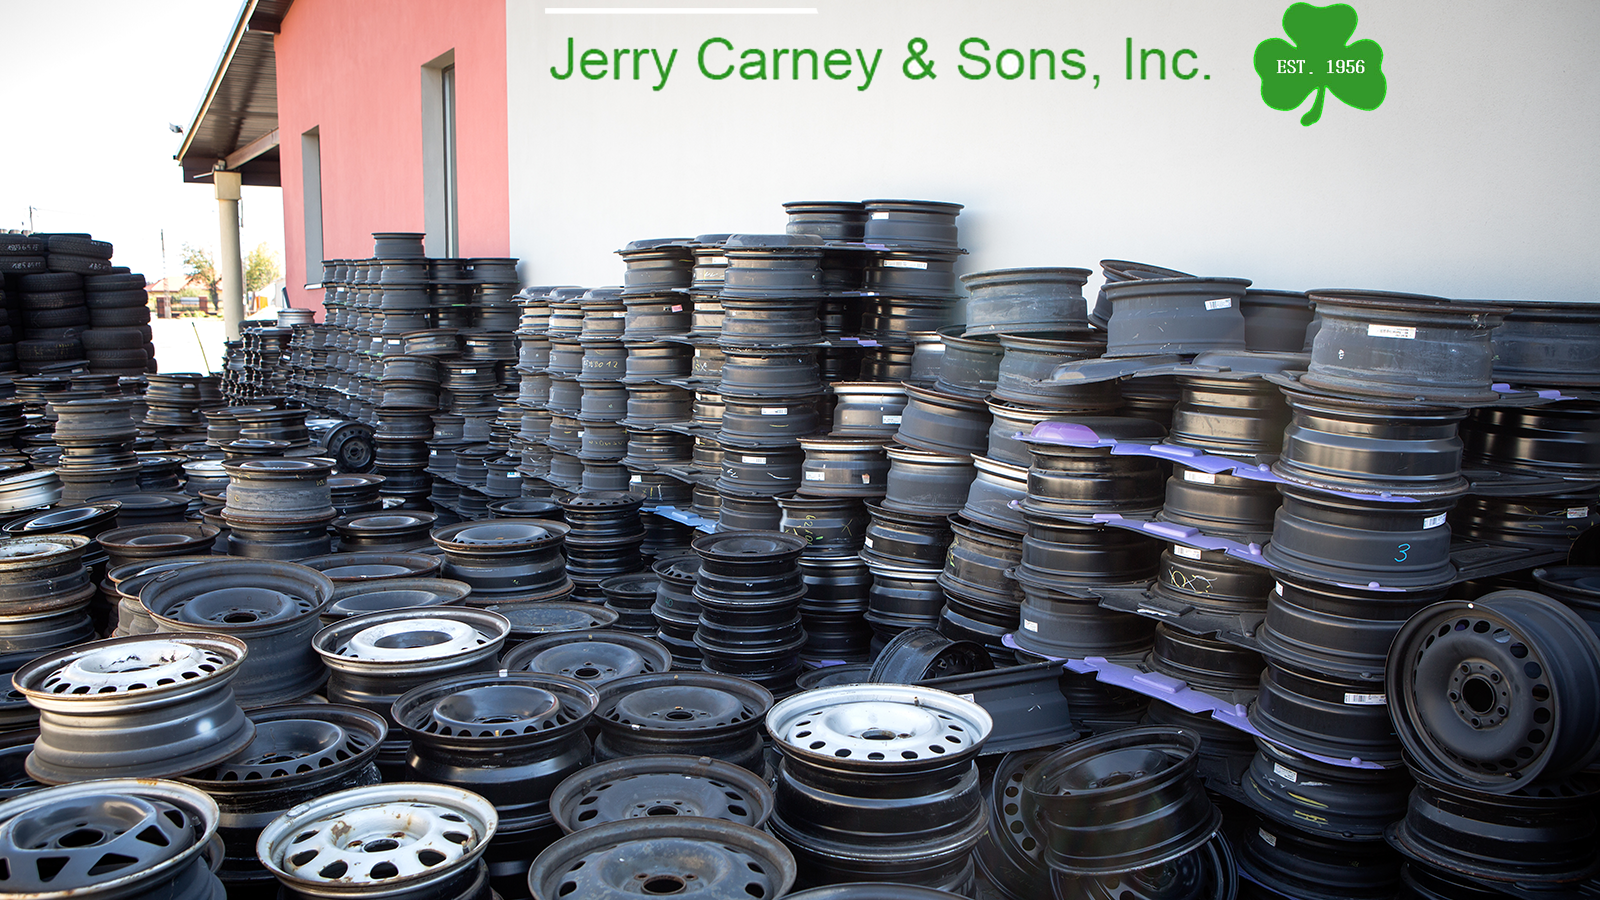 Jerry Carney & Sons, Inc. image 5